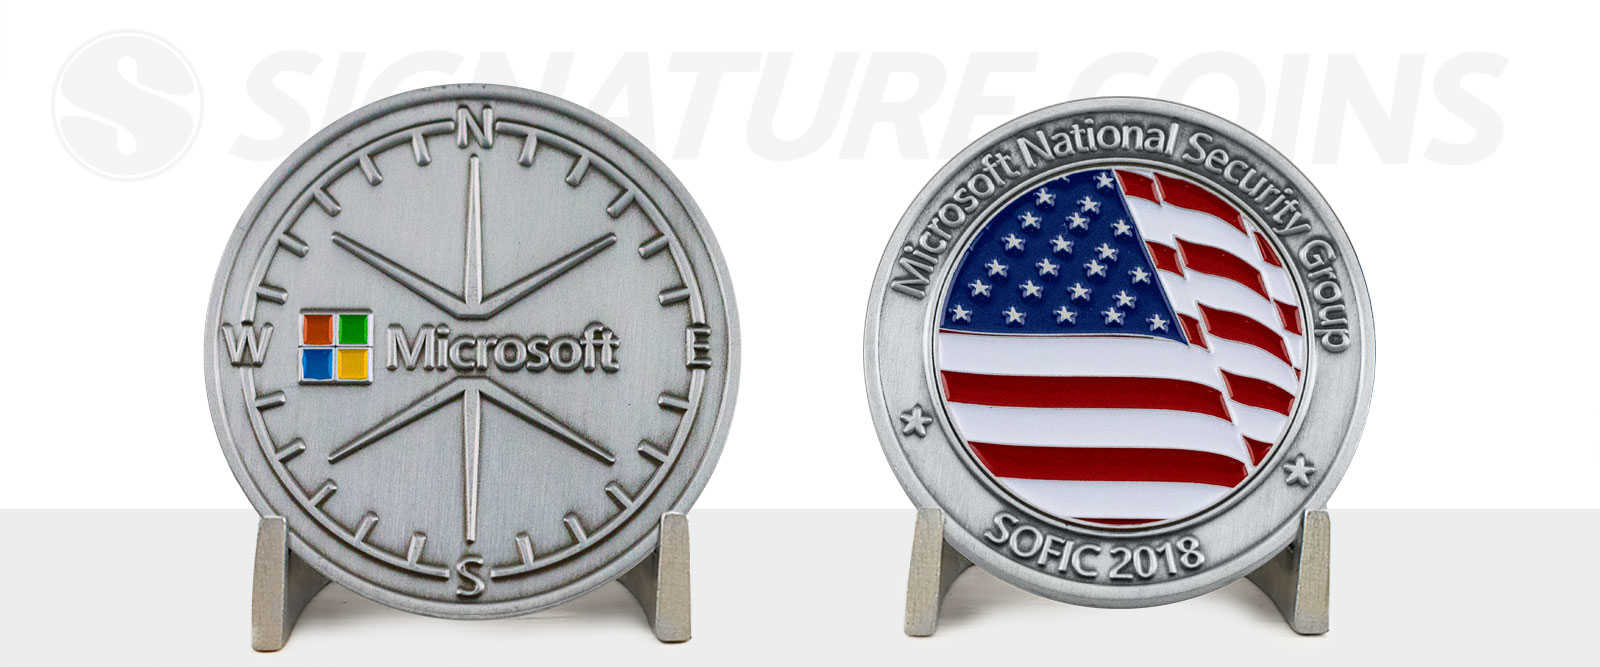 custom-coin-company-signature-coins-5